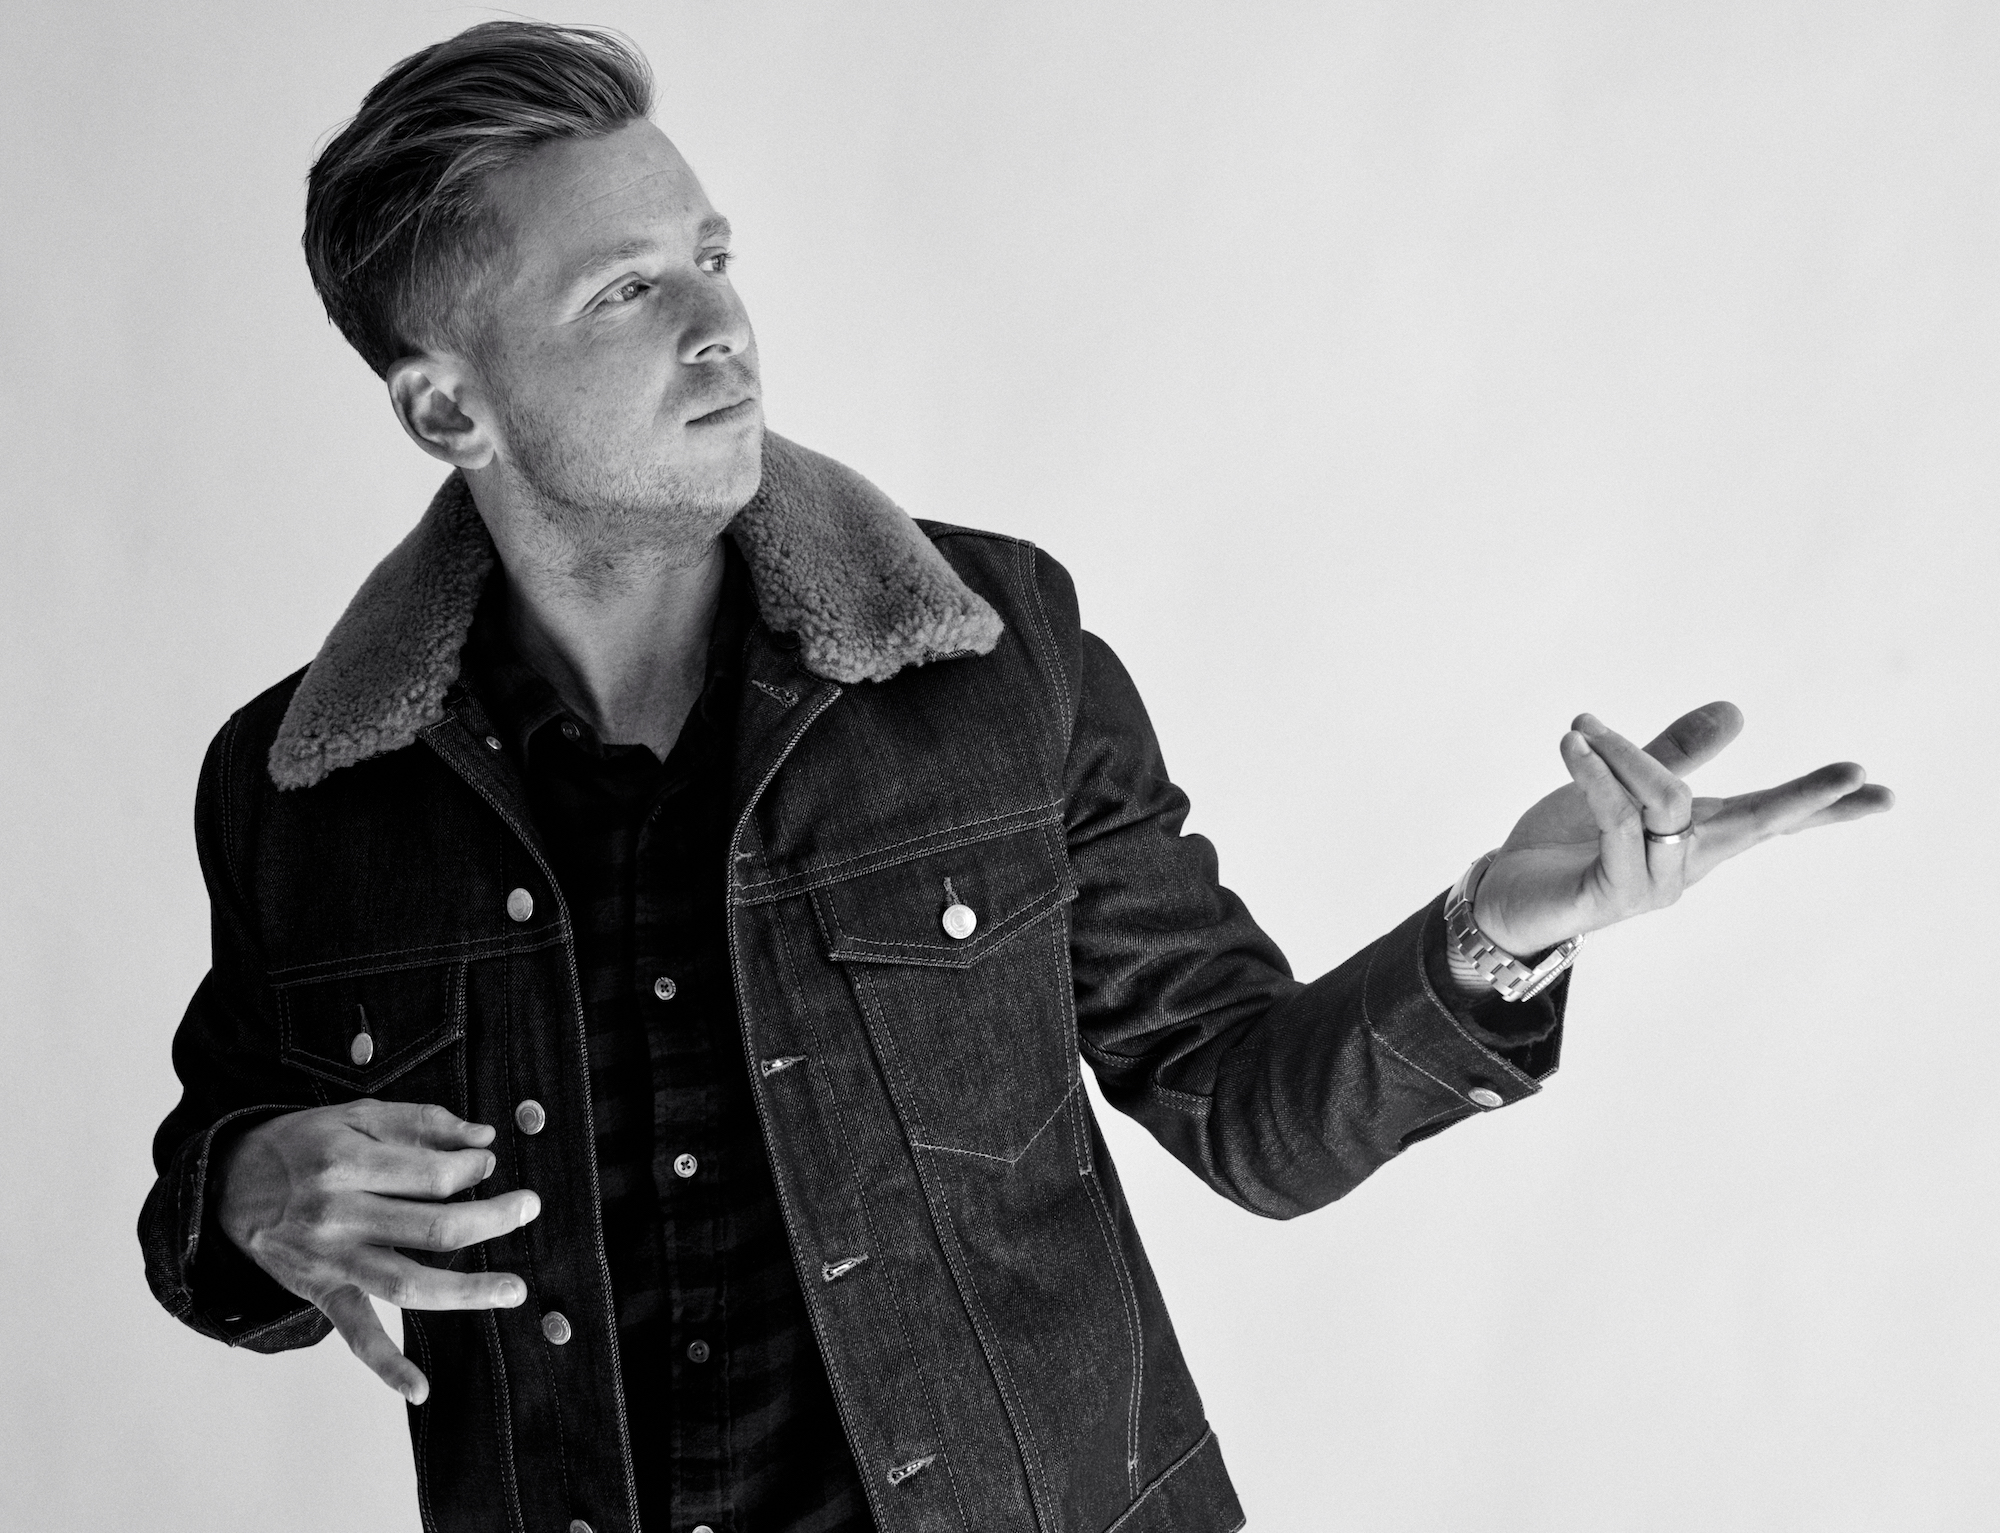 Ryan Tedder, frontman of OneRepublic, interview with Wonderland air guitar